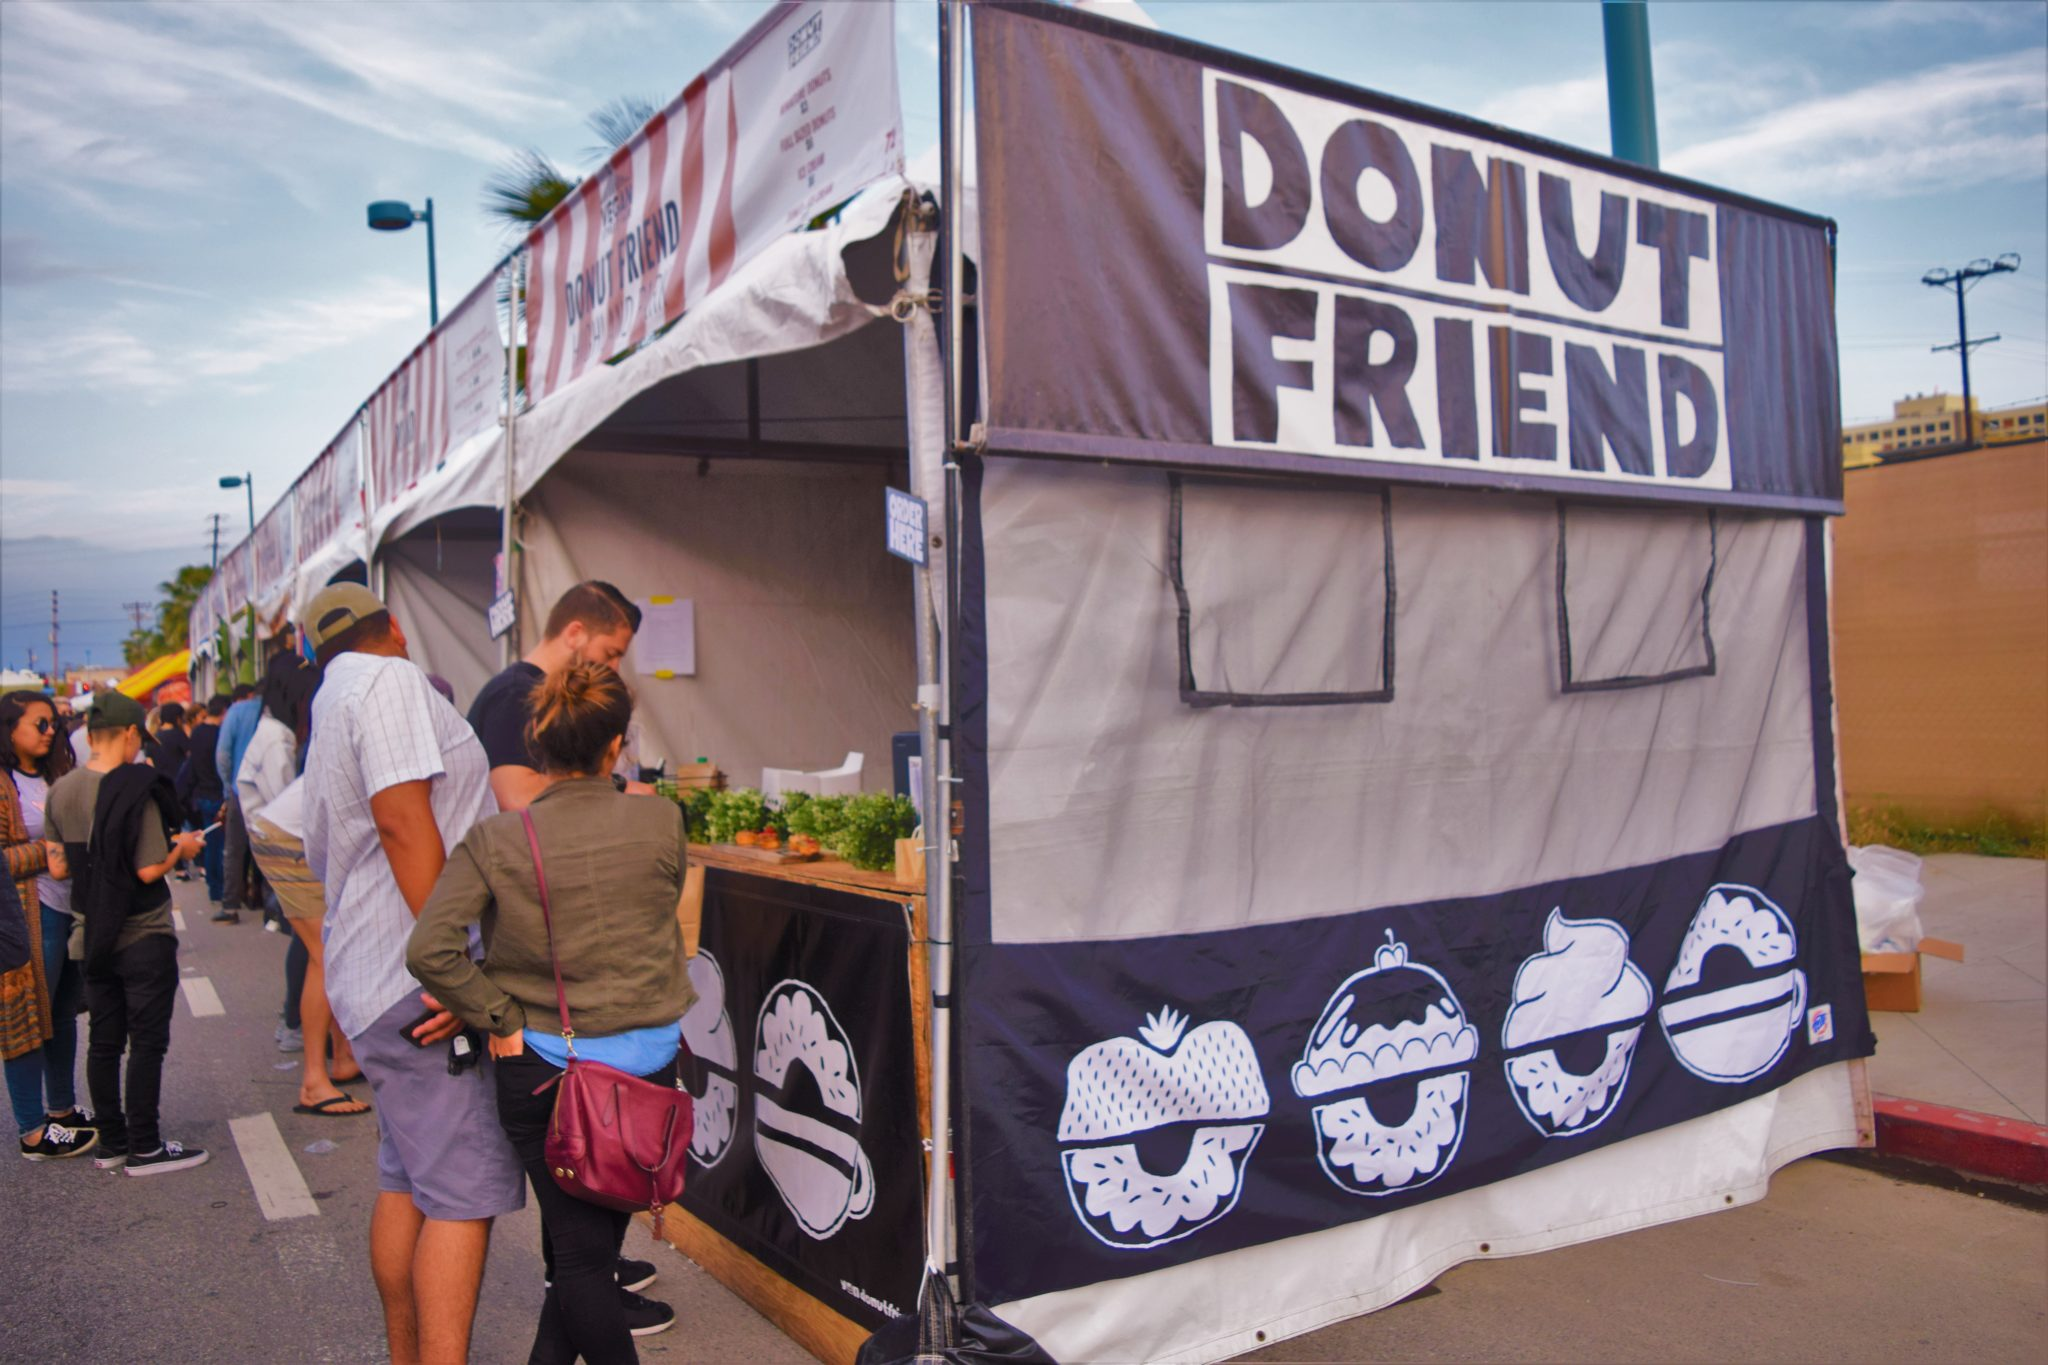 Donut friend food stall at the Vegan Street Fair, Los Angeles, California